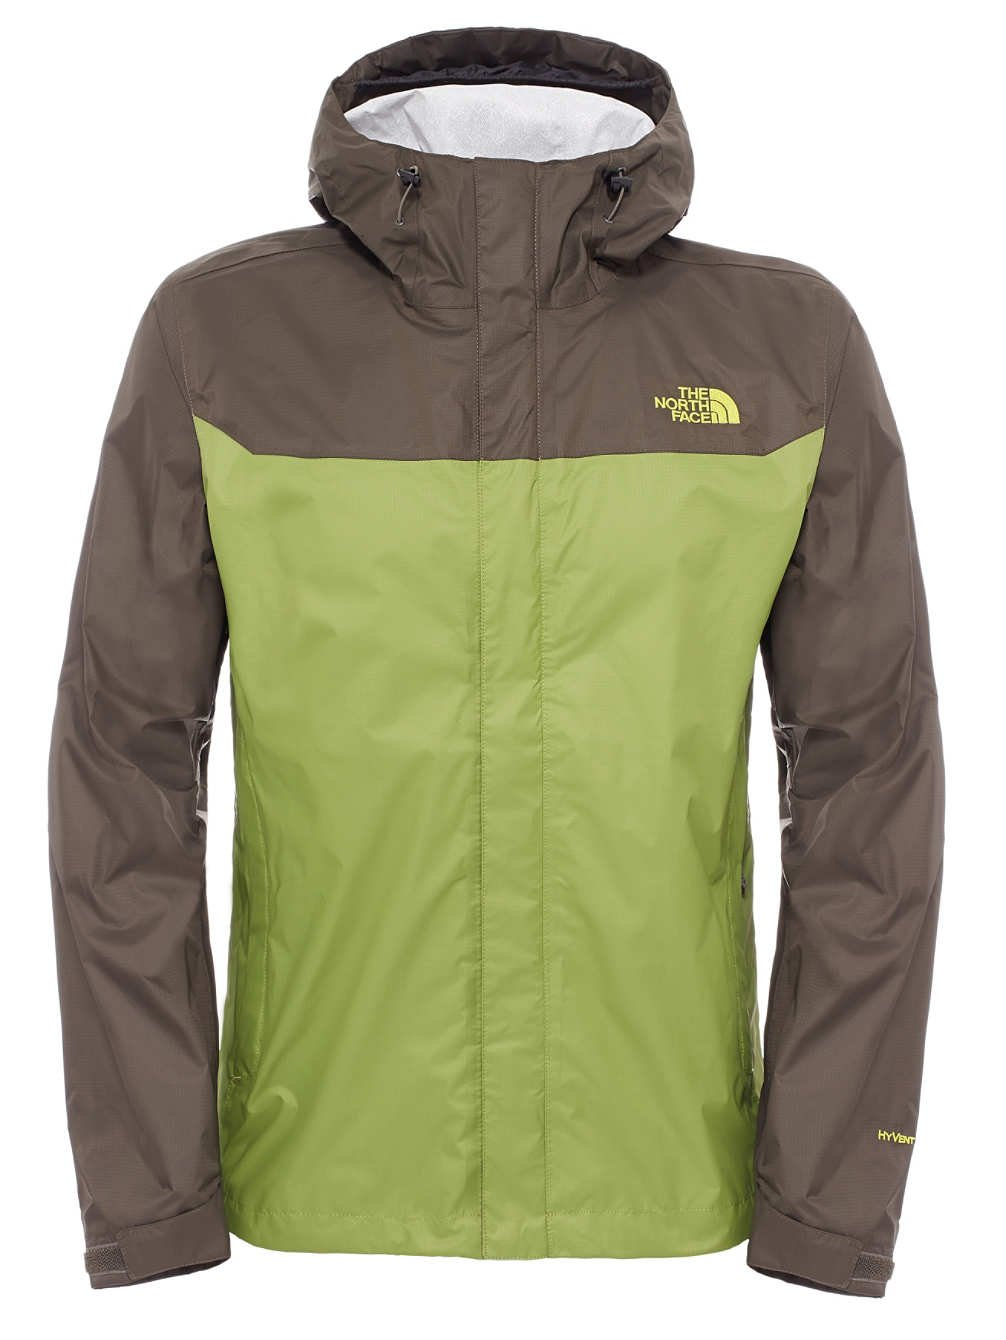 The North Face Herren Jacke Venture Jacket online kaufen